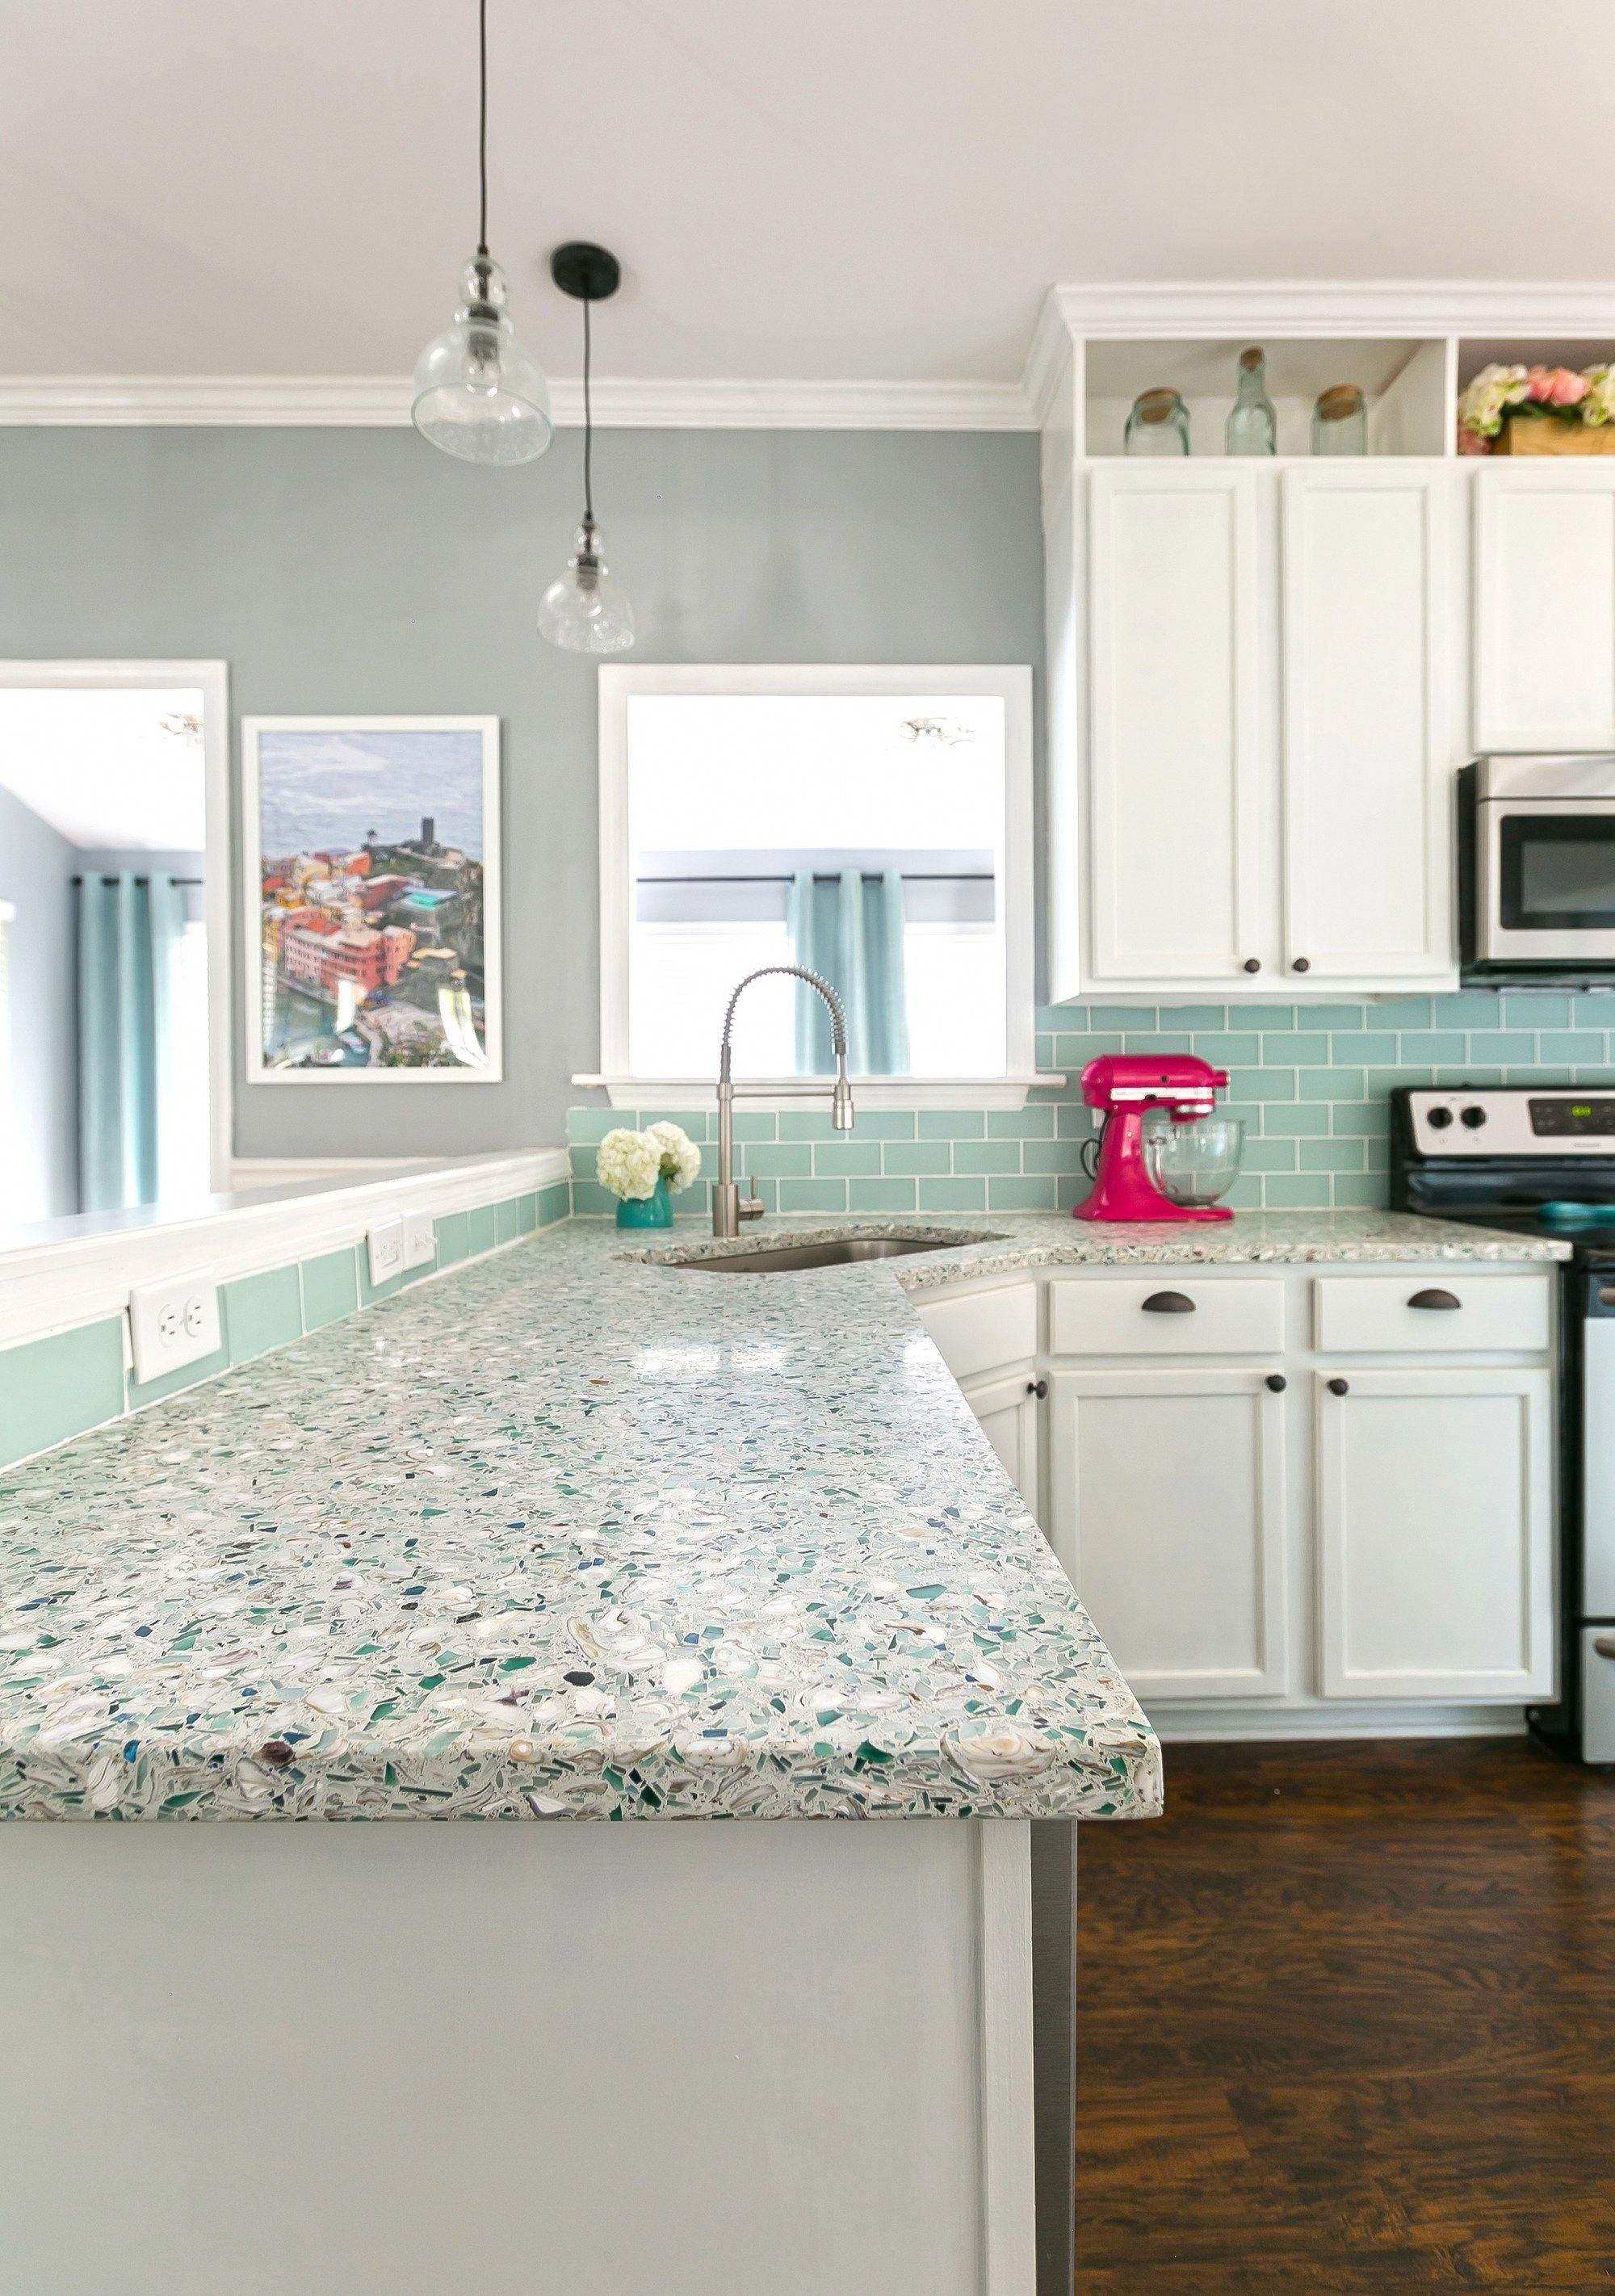 Diy Renovated Coastal Kitchen With Light And Bright Shades Of Blue And White Recycled Glass And Oys Coastal Kitchen Design Coastal Kitchen Mint Green Kitchen